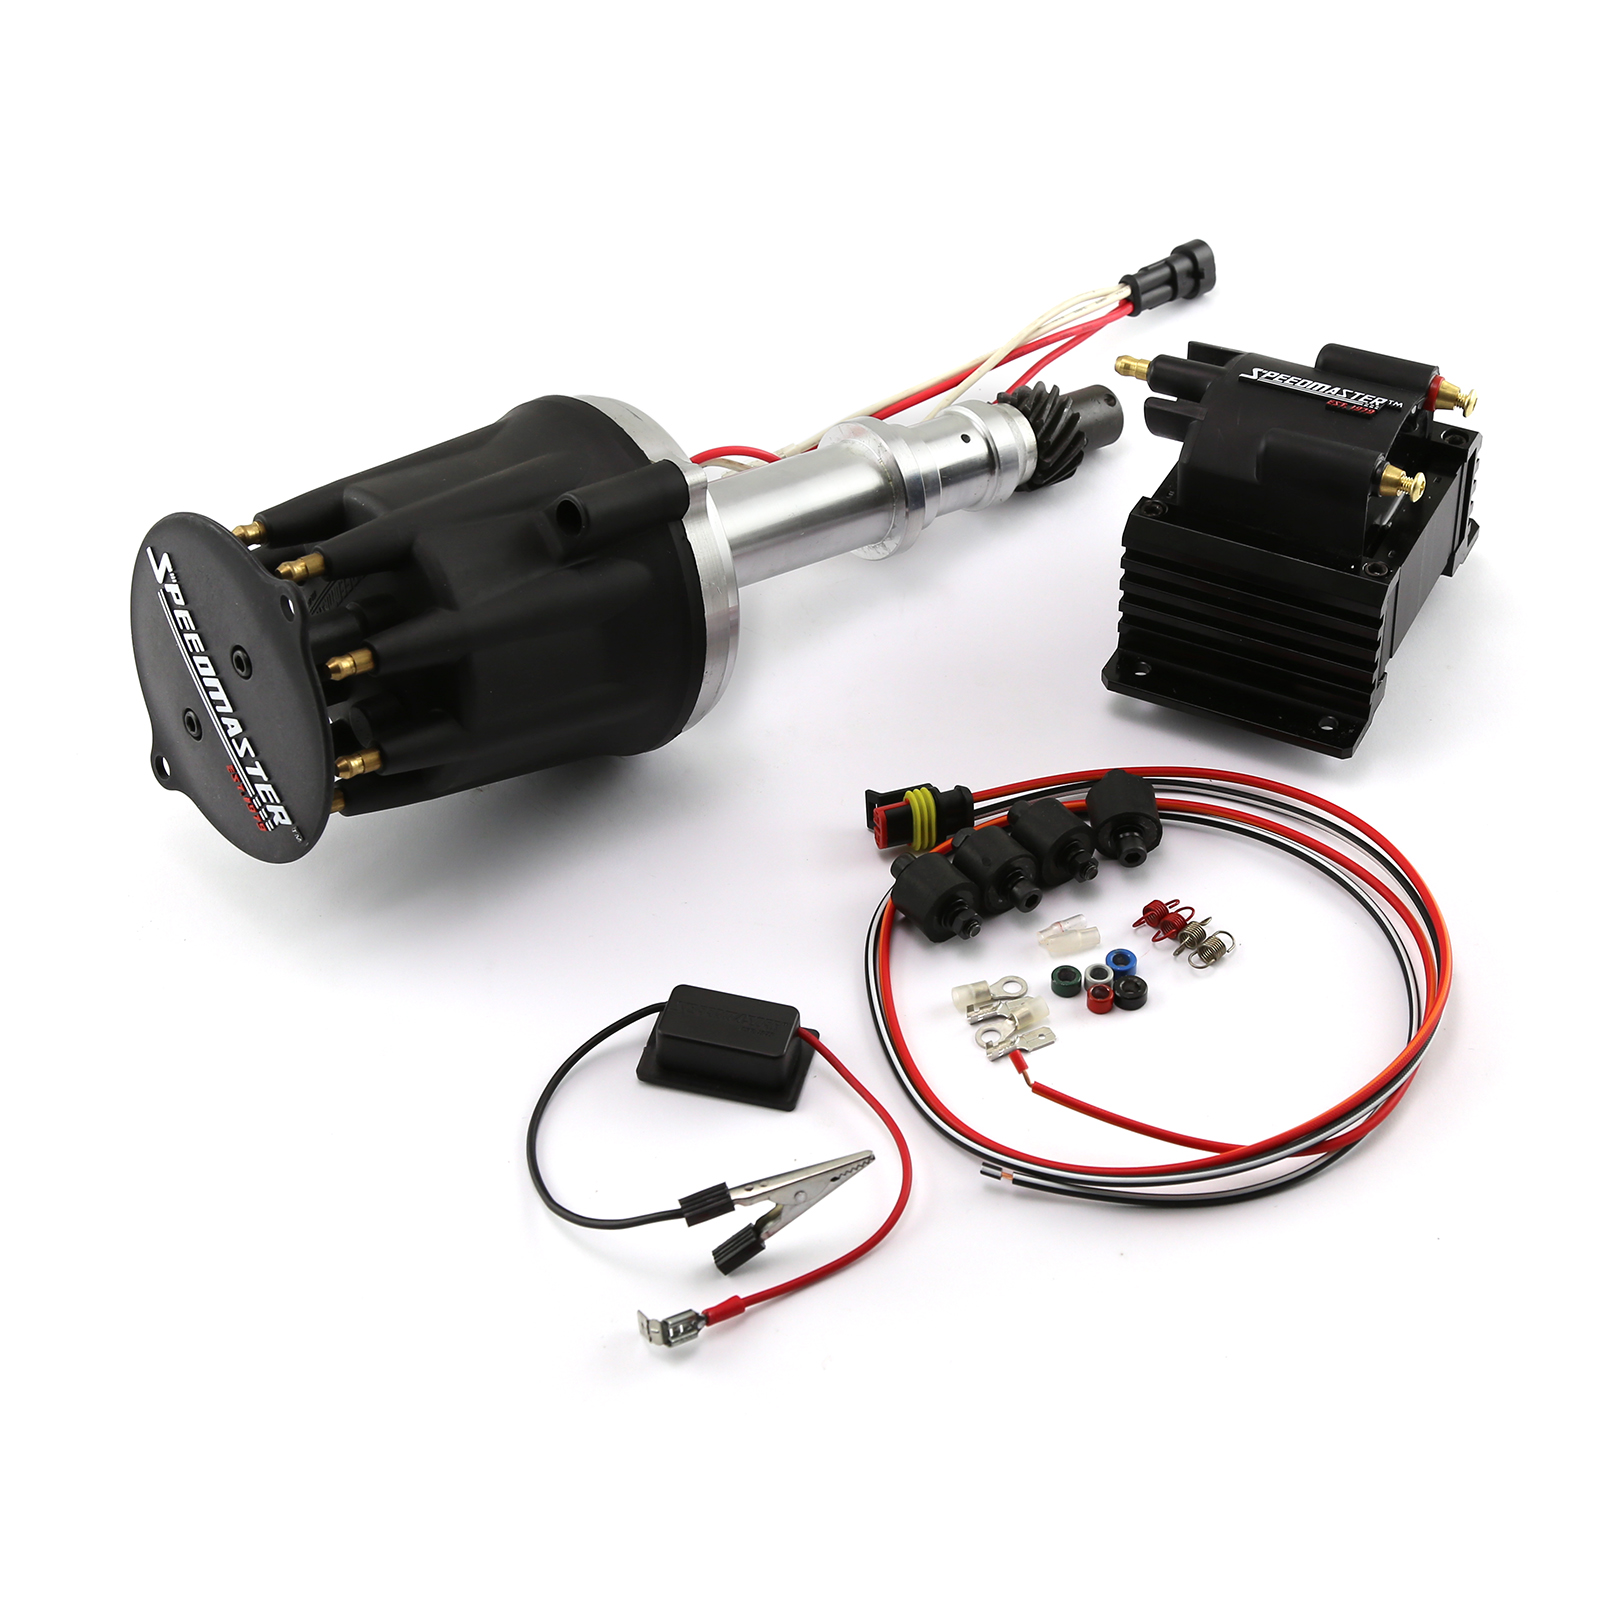 Pontiac 326 400 455 - El Rayo DNA® - Distributor Ignition Kit